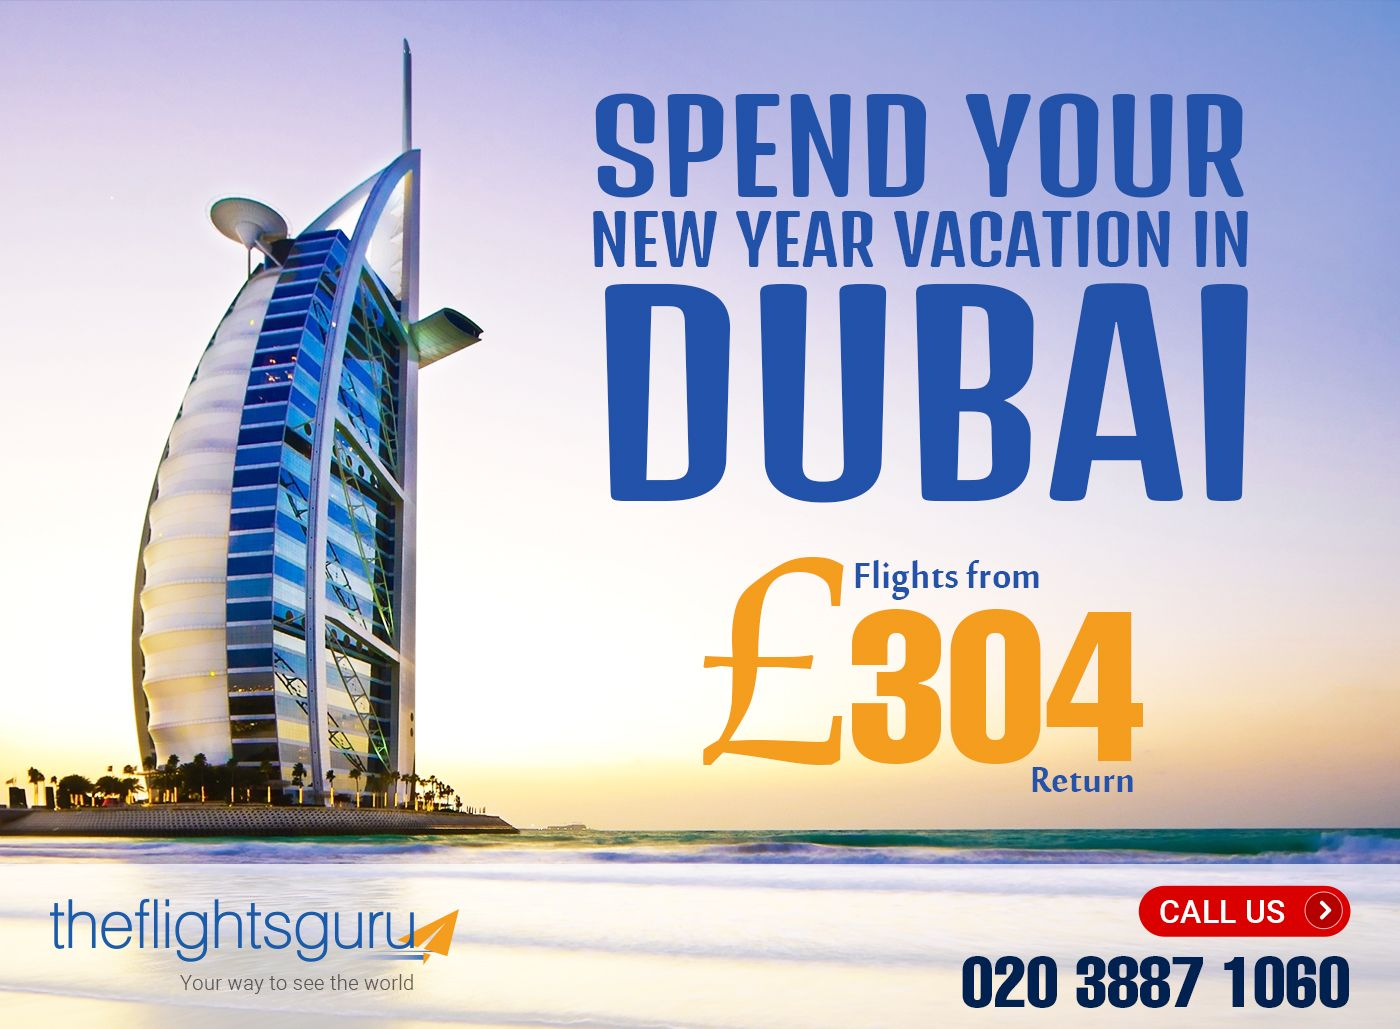 New Year has started Book your flight and hotel to Dubai